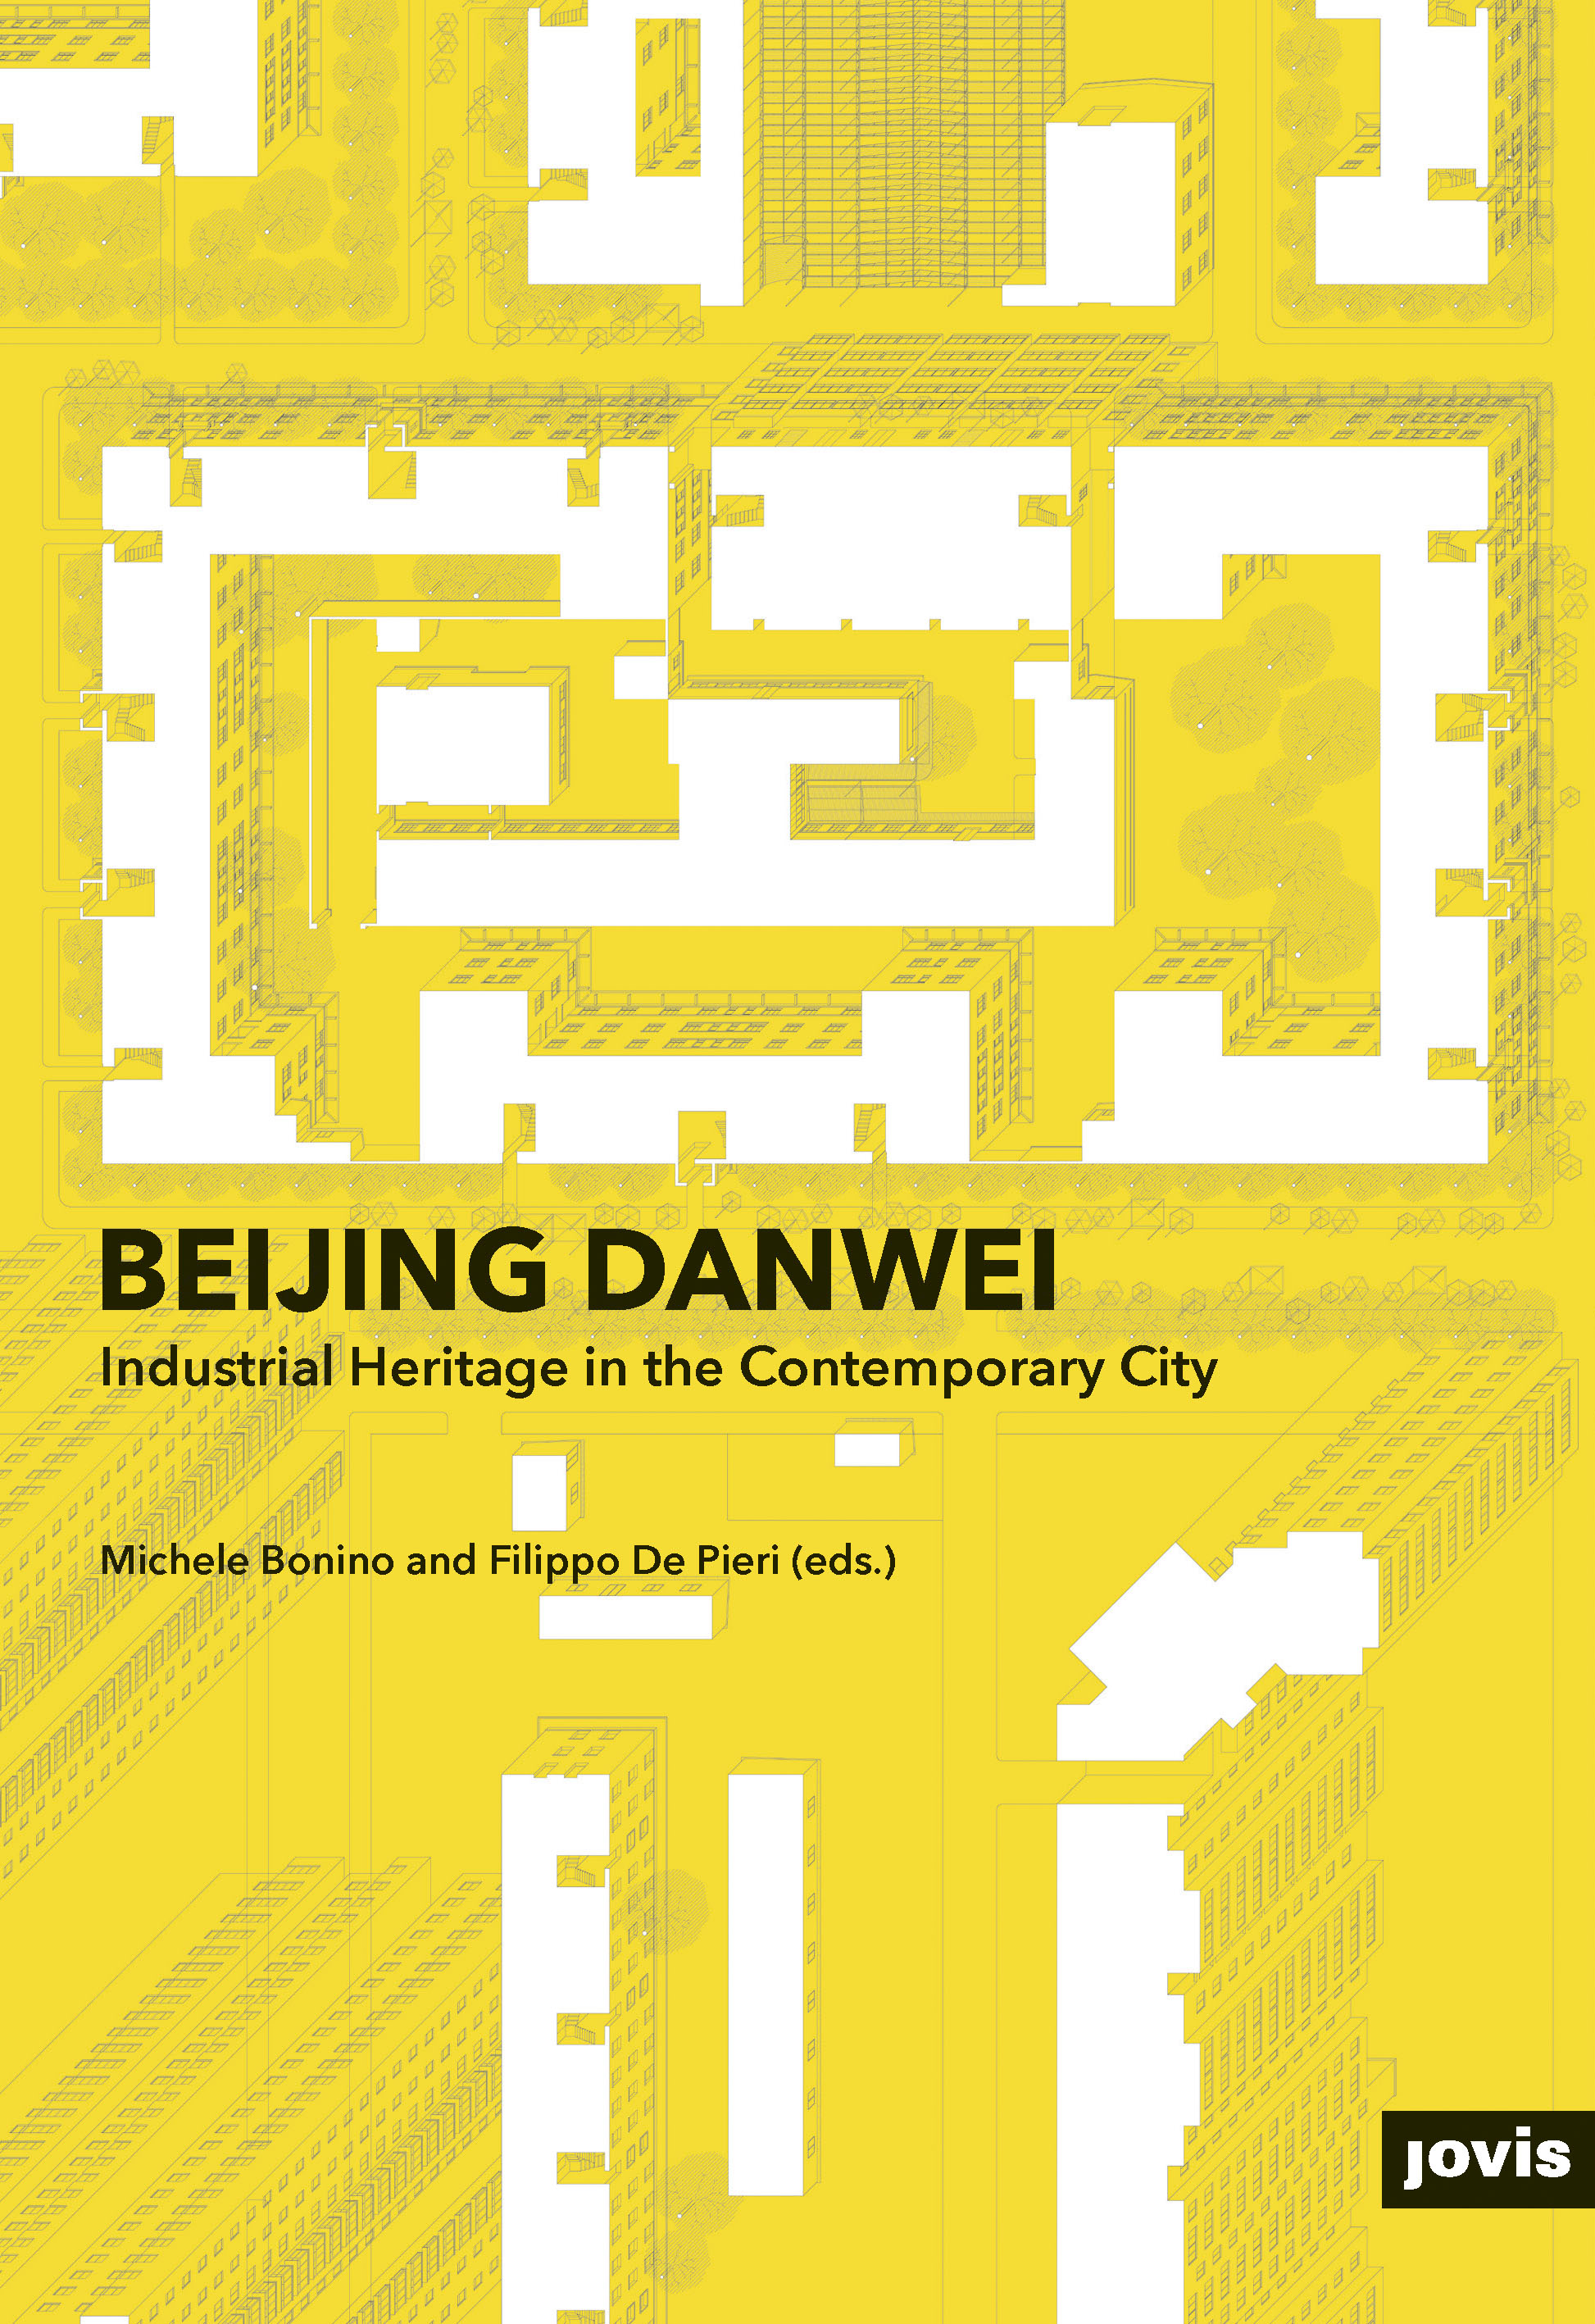 This book reveals more about the Danwei collective working model.